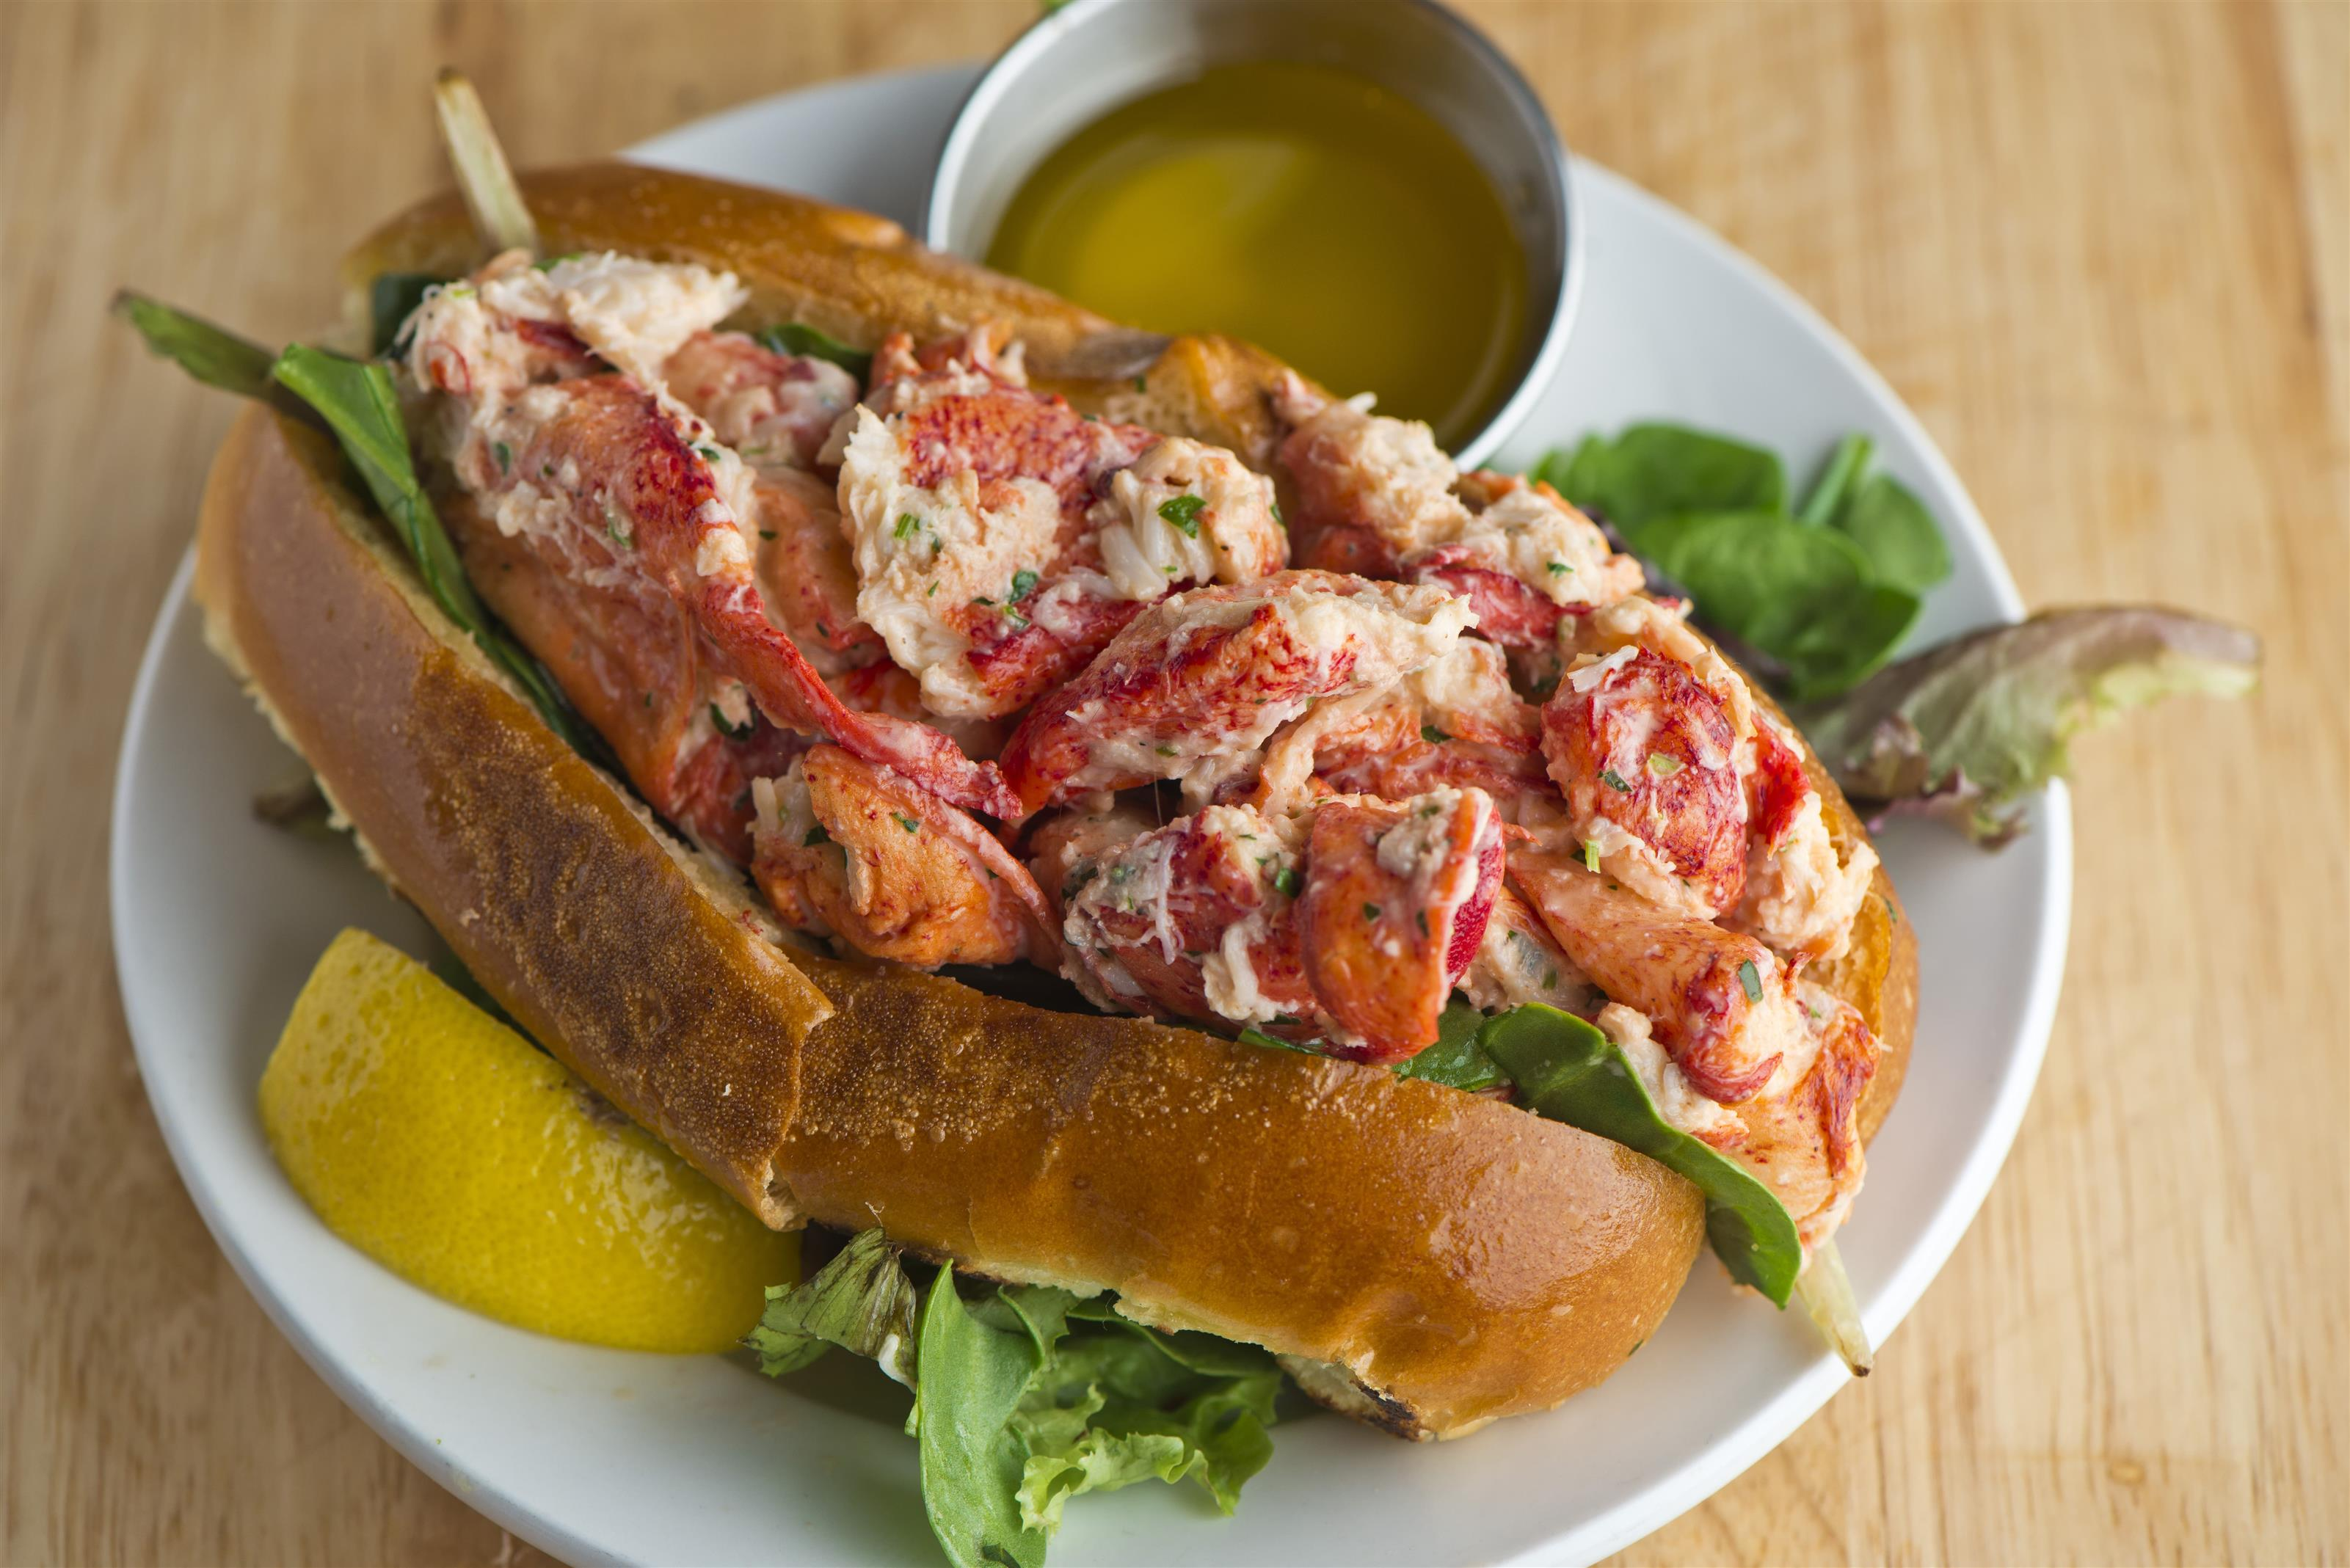 Lobster roll on a bed of lettuce with butter sauce and a lemon wedge